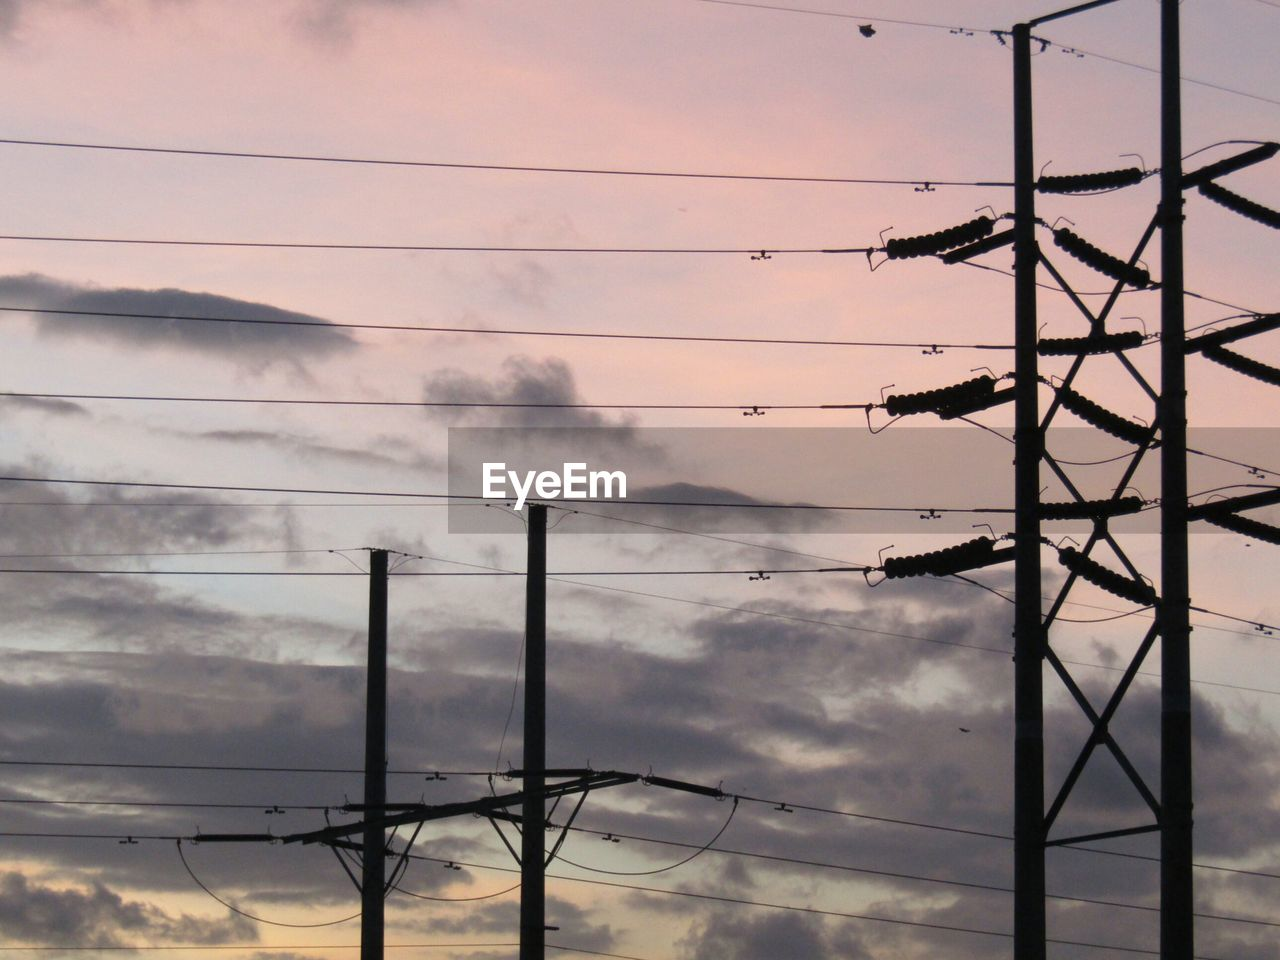 cable, electricity, power line, sky, cloud - sky, technology, connection, fuel and power generation, power supply, electricity pylon, nature, no people, low angle view, sunset, smoke - physical structure, silhouette, outdoors, environmental issues, pollution, power, air pollution, telephone line, complexity, electrical equipment